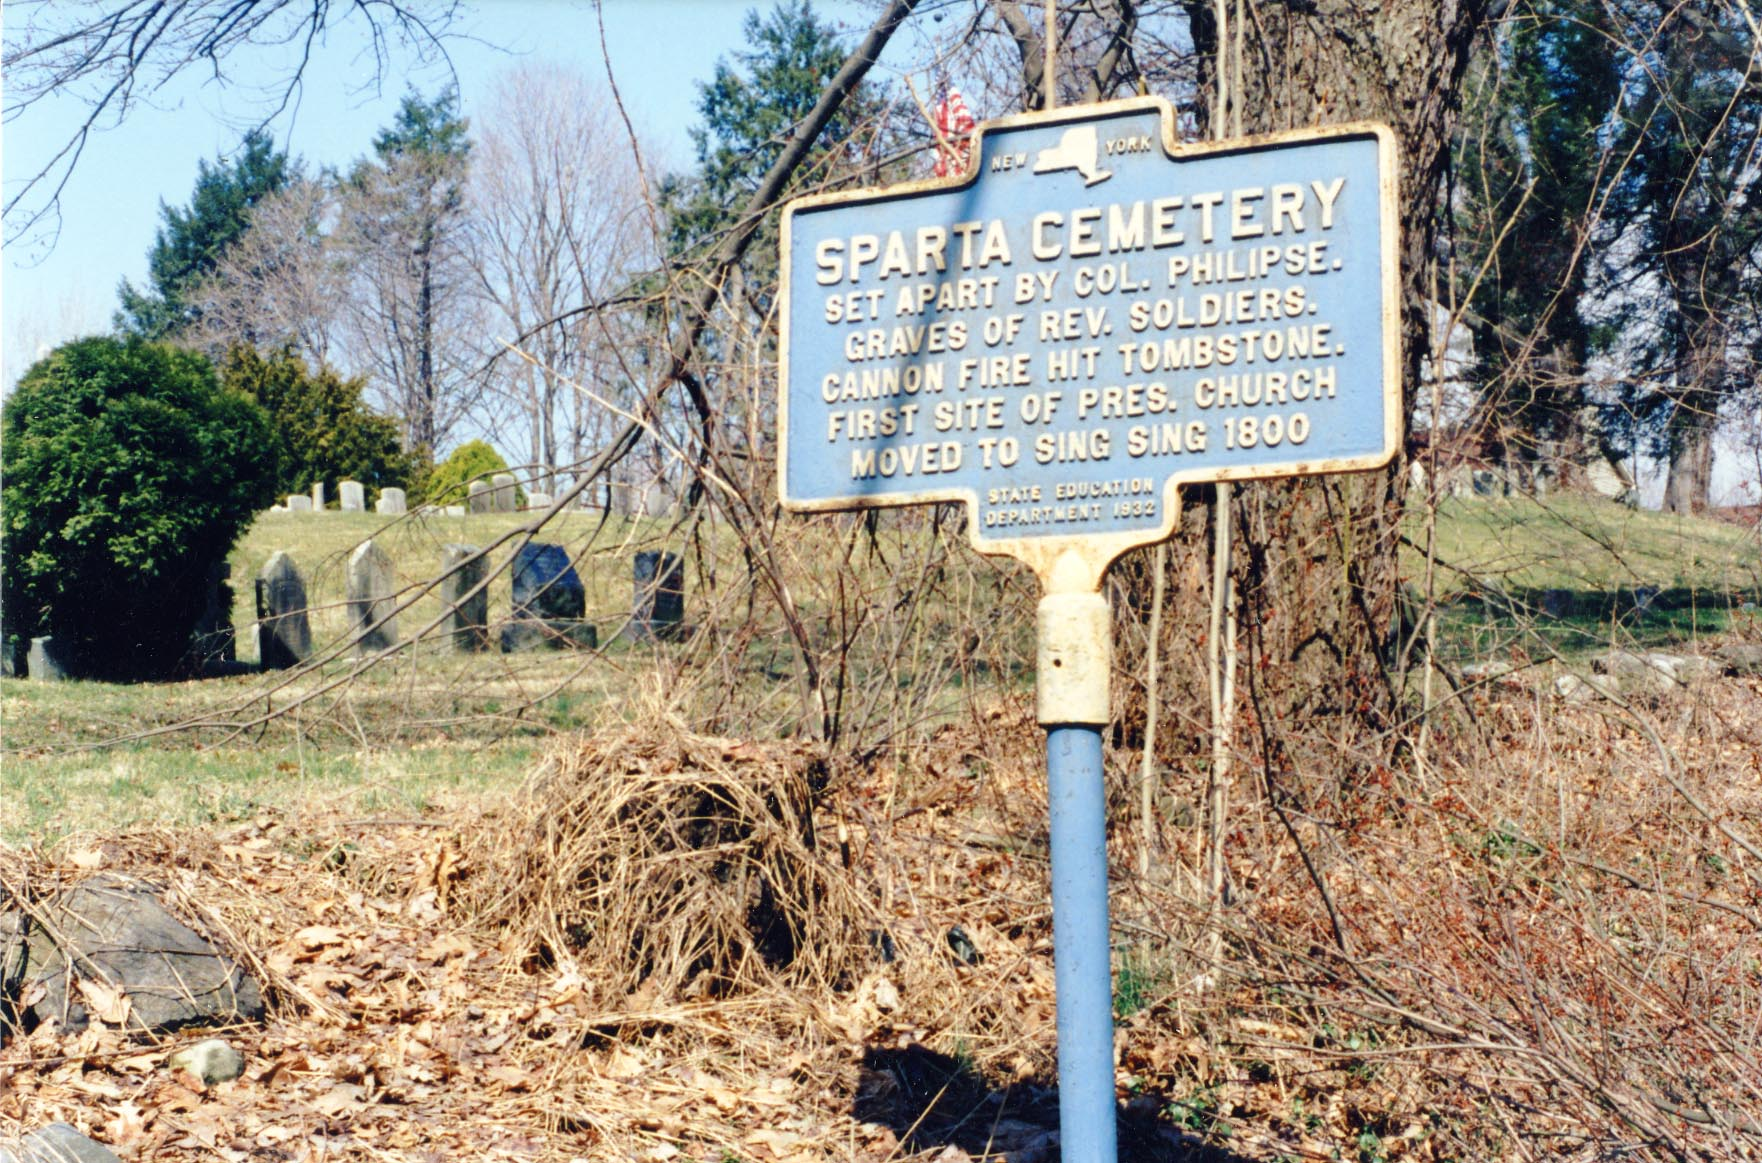 New York State historic marker at Sparta Cemetery.